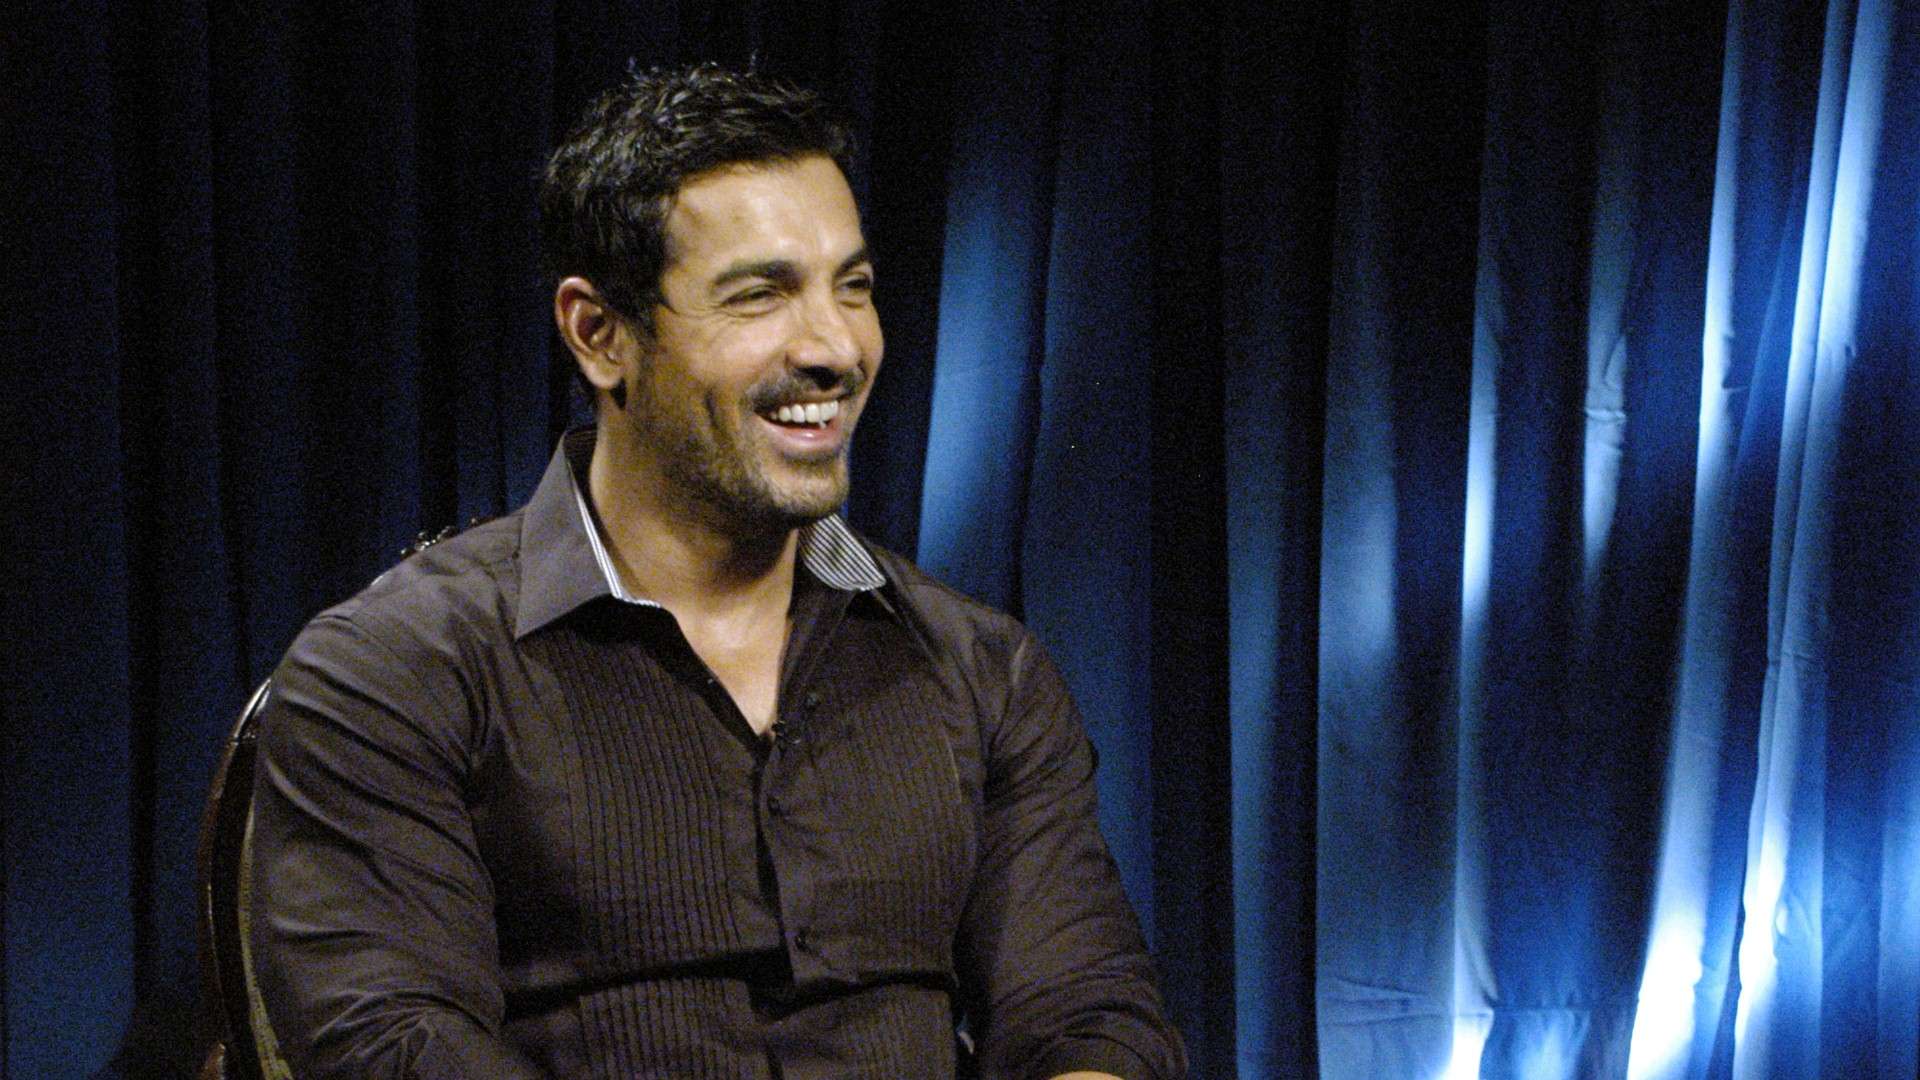 RAW, John Abraham, Romeo Akbar Walter, Sikander Kher, Moni Roy, Movie, Release Date, News Mobile, News Mobile India